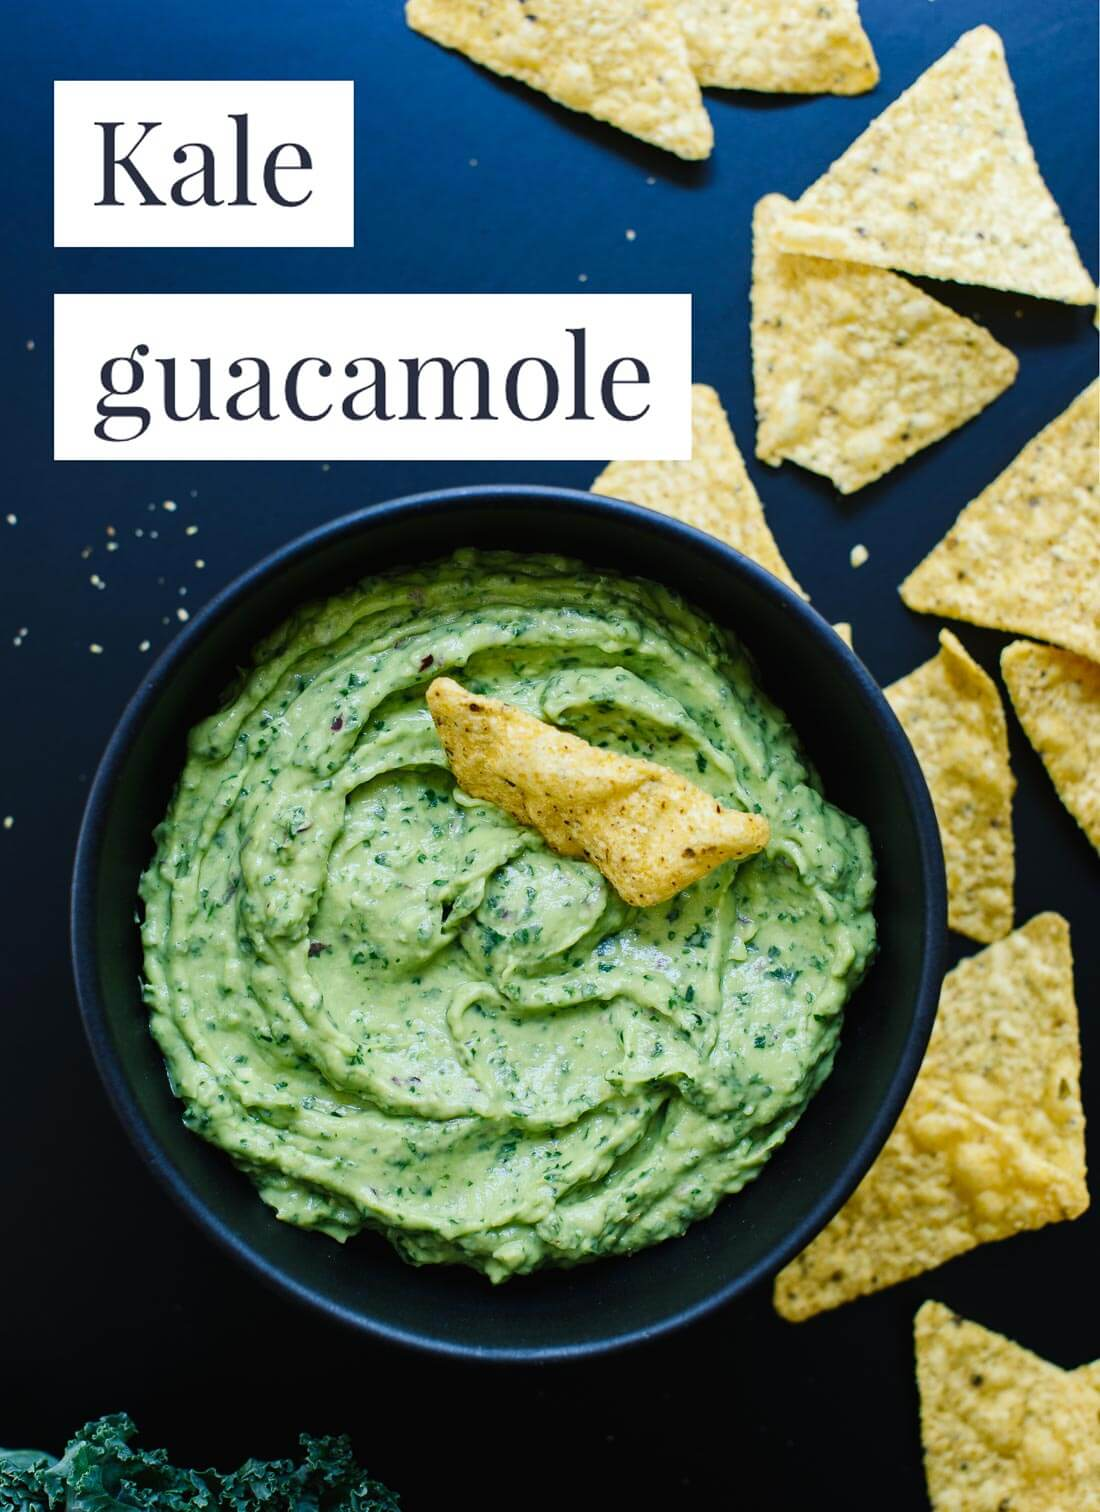 This kale guacamole recipe is delicious, nutritious and so easy to make! cookieandkate.com